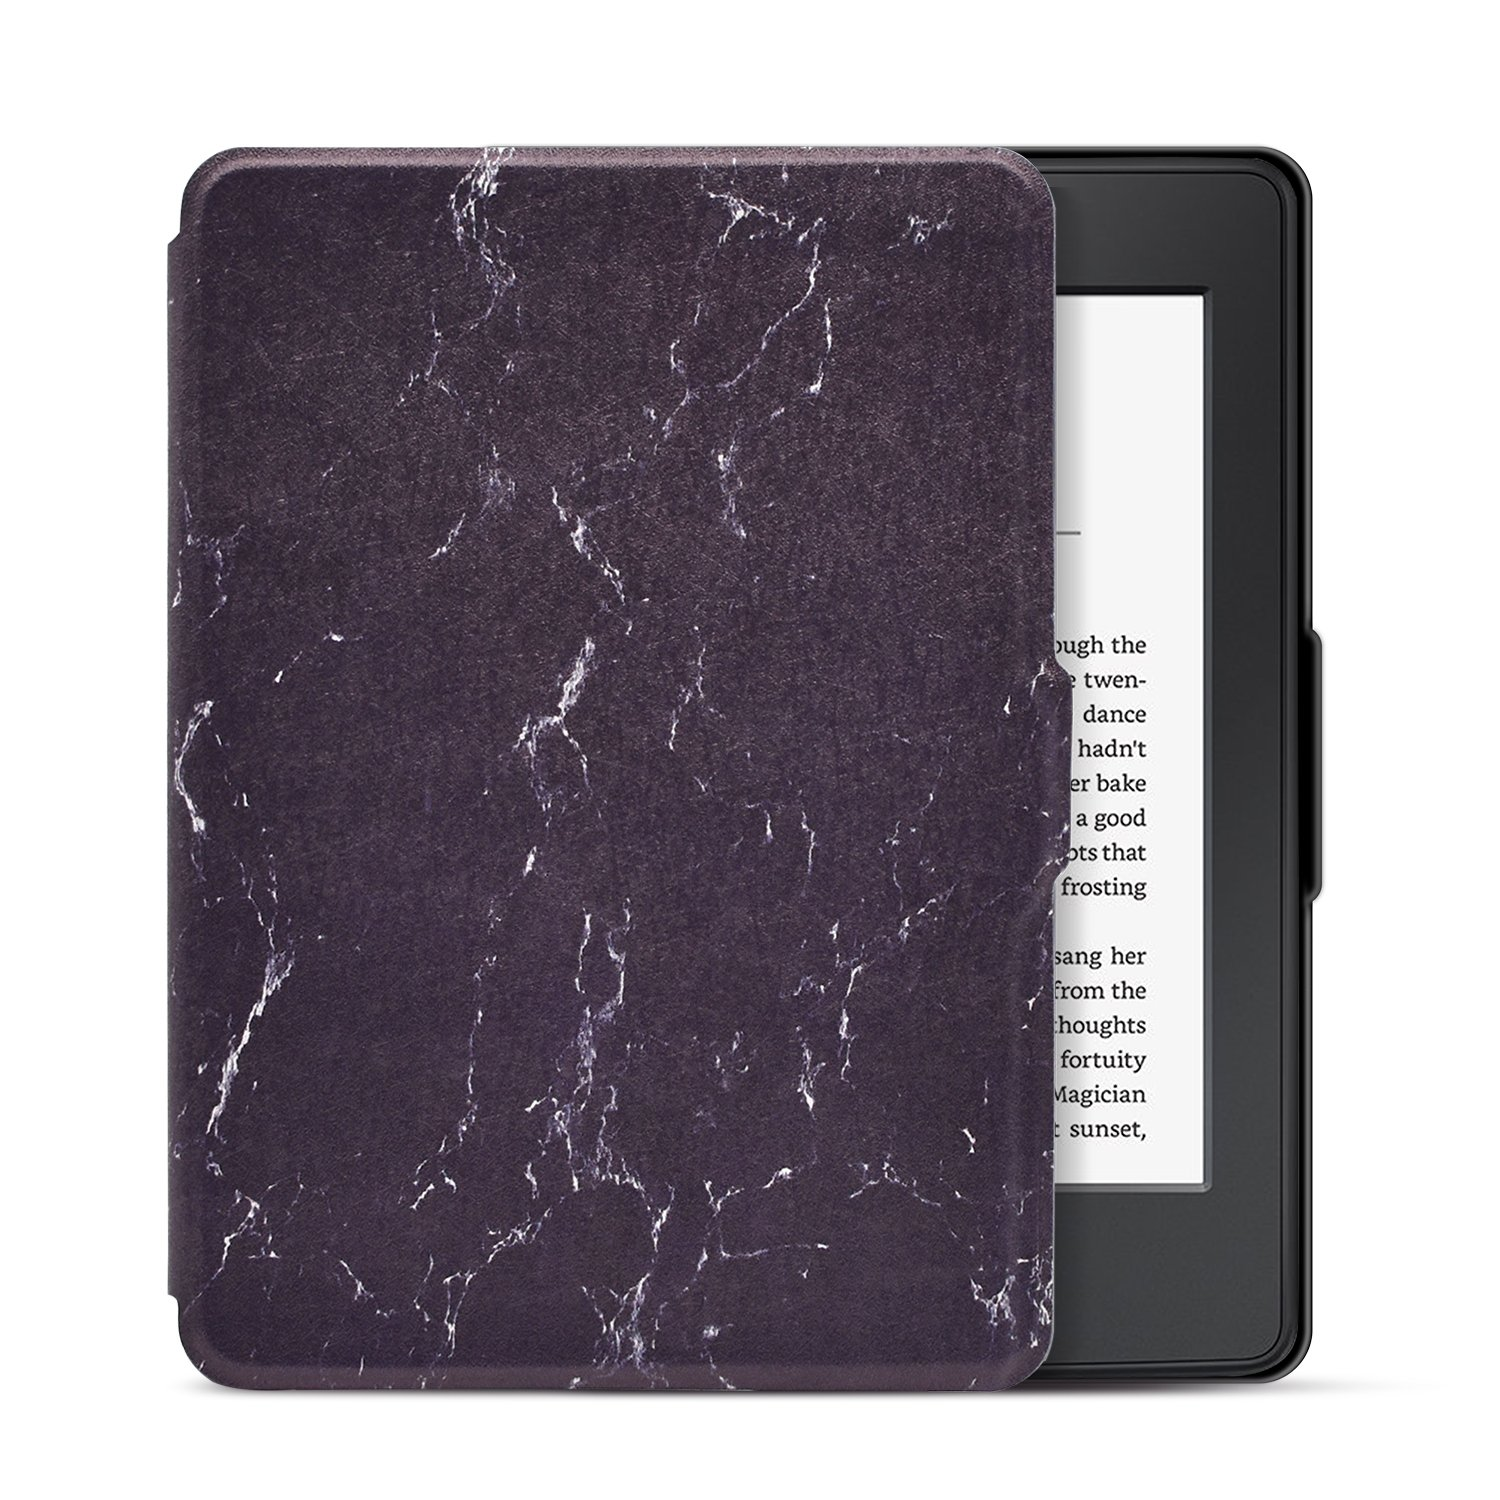 Dopup Case for Kindle Paperwhite, Slim and Light Smart Shell Cover for All-New Amazon Kindle Paperwhite, Folio Flip Style with Auto Sleep/Wake (Black Marble)